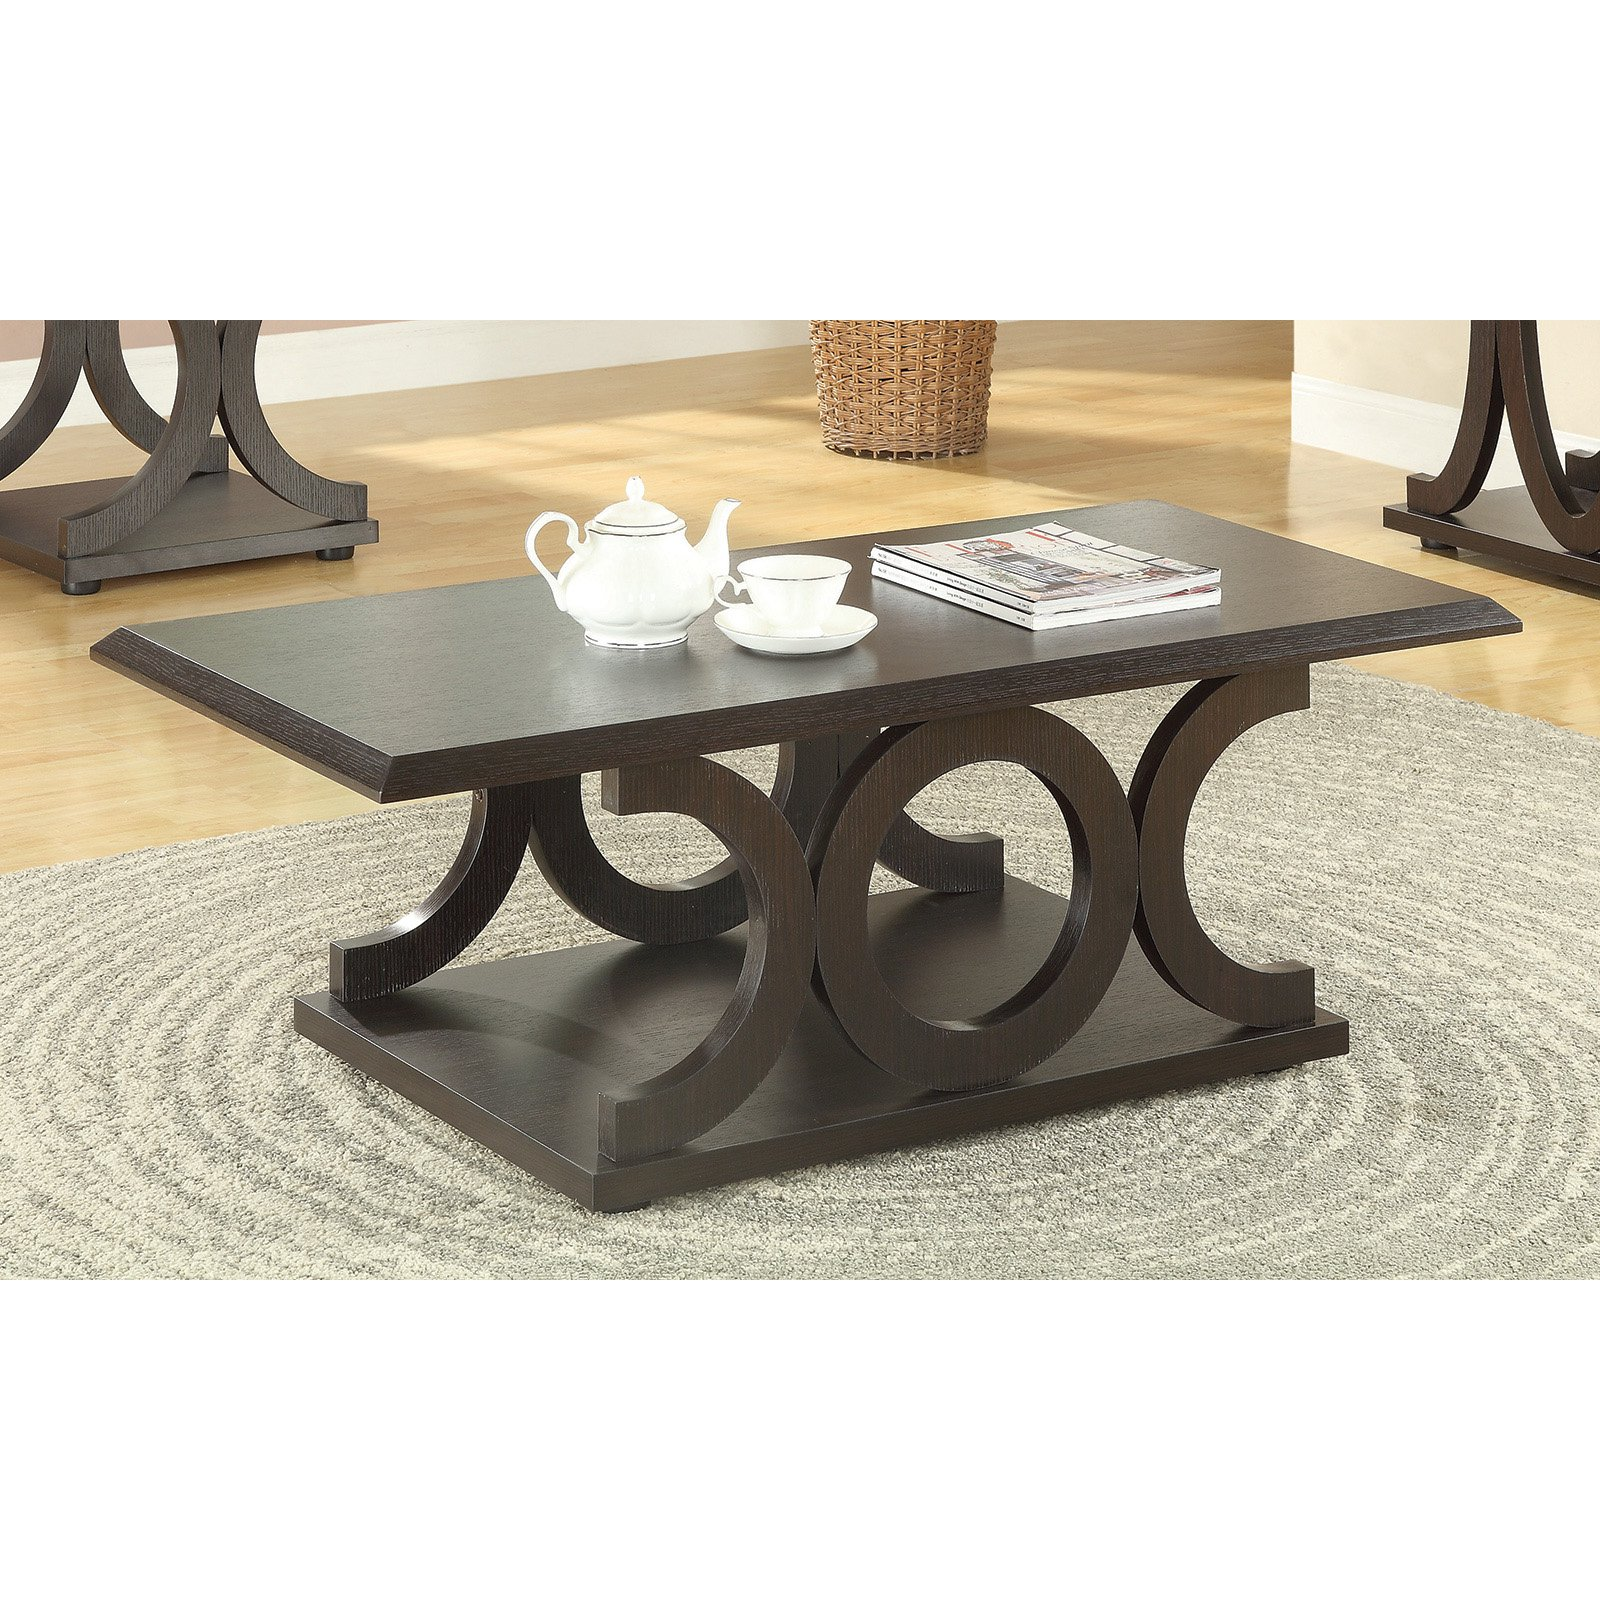 Coaster Furniture Wood Coffee Table Cappuccino by Coaster